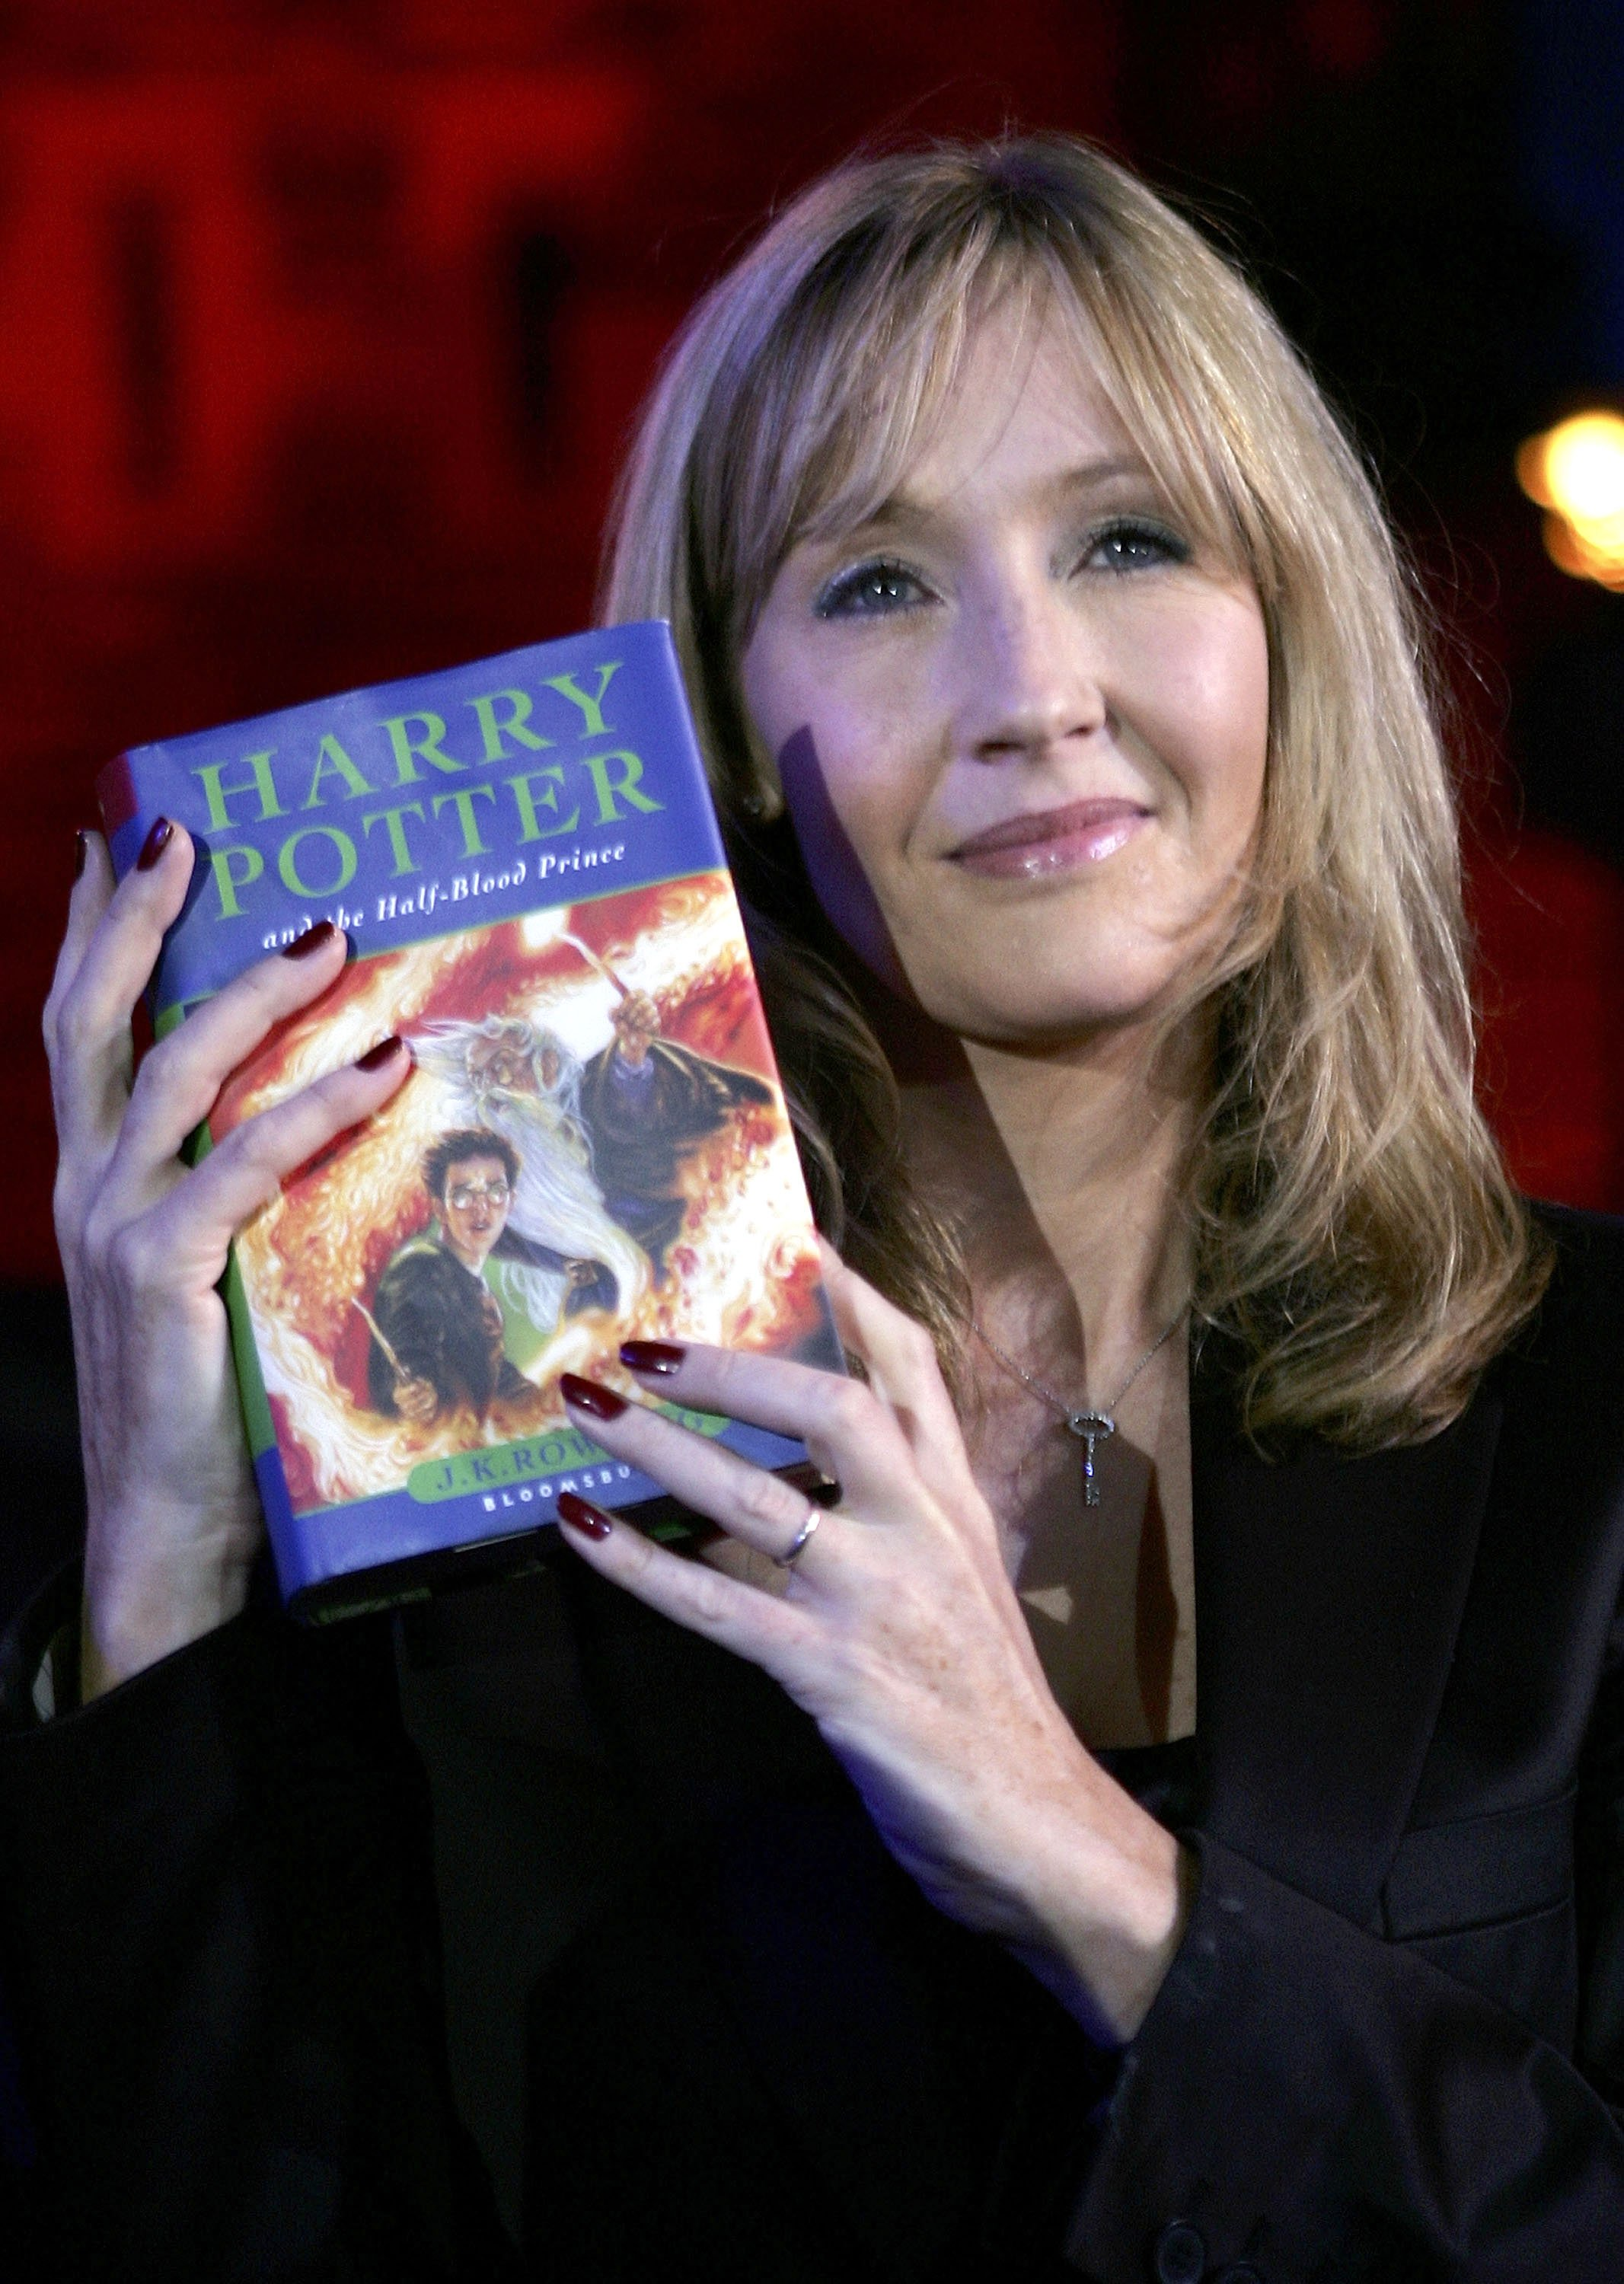 Image Credits: Getty Images | J.K. Rowling holding a copy of Harry Potter